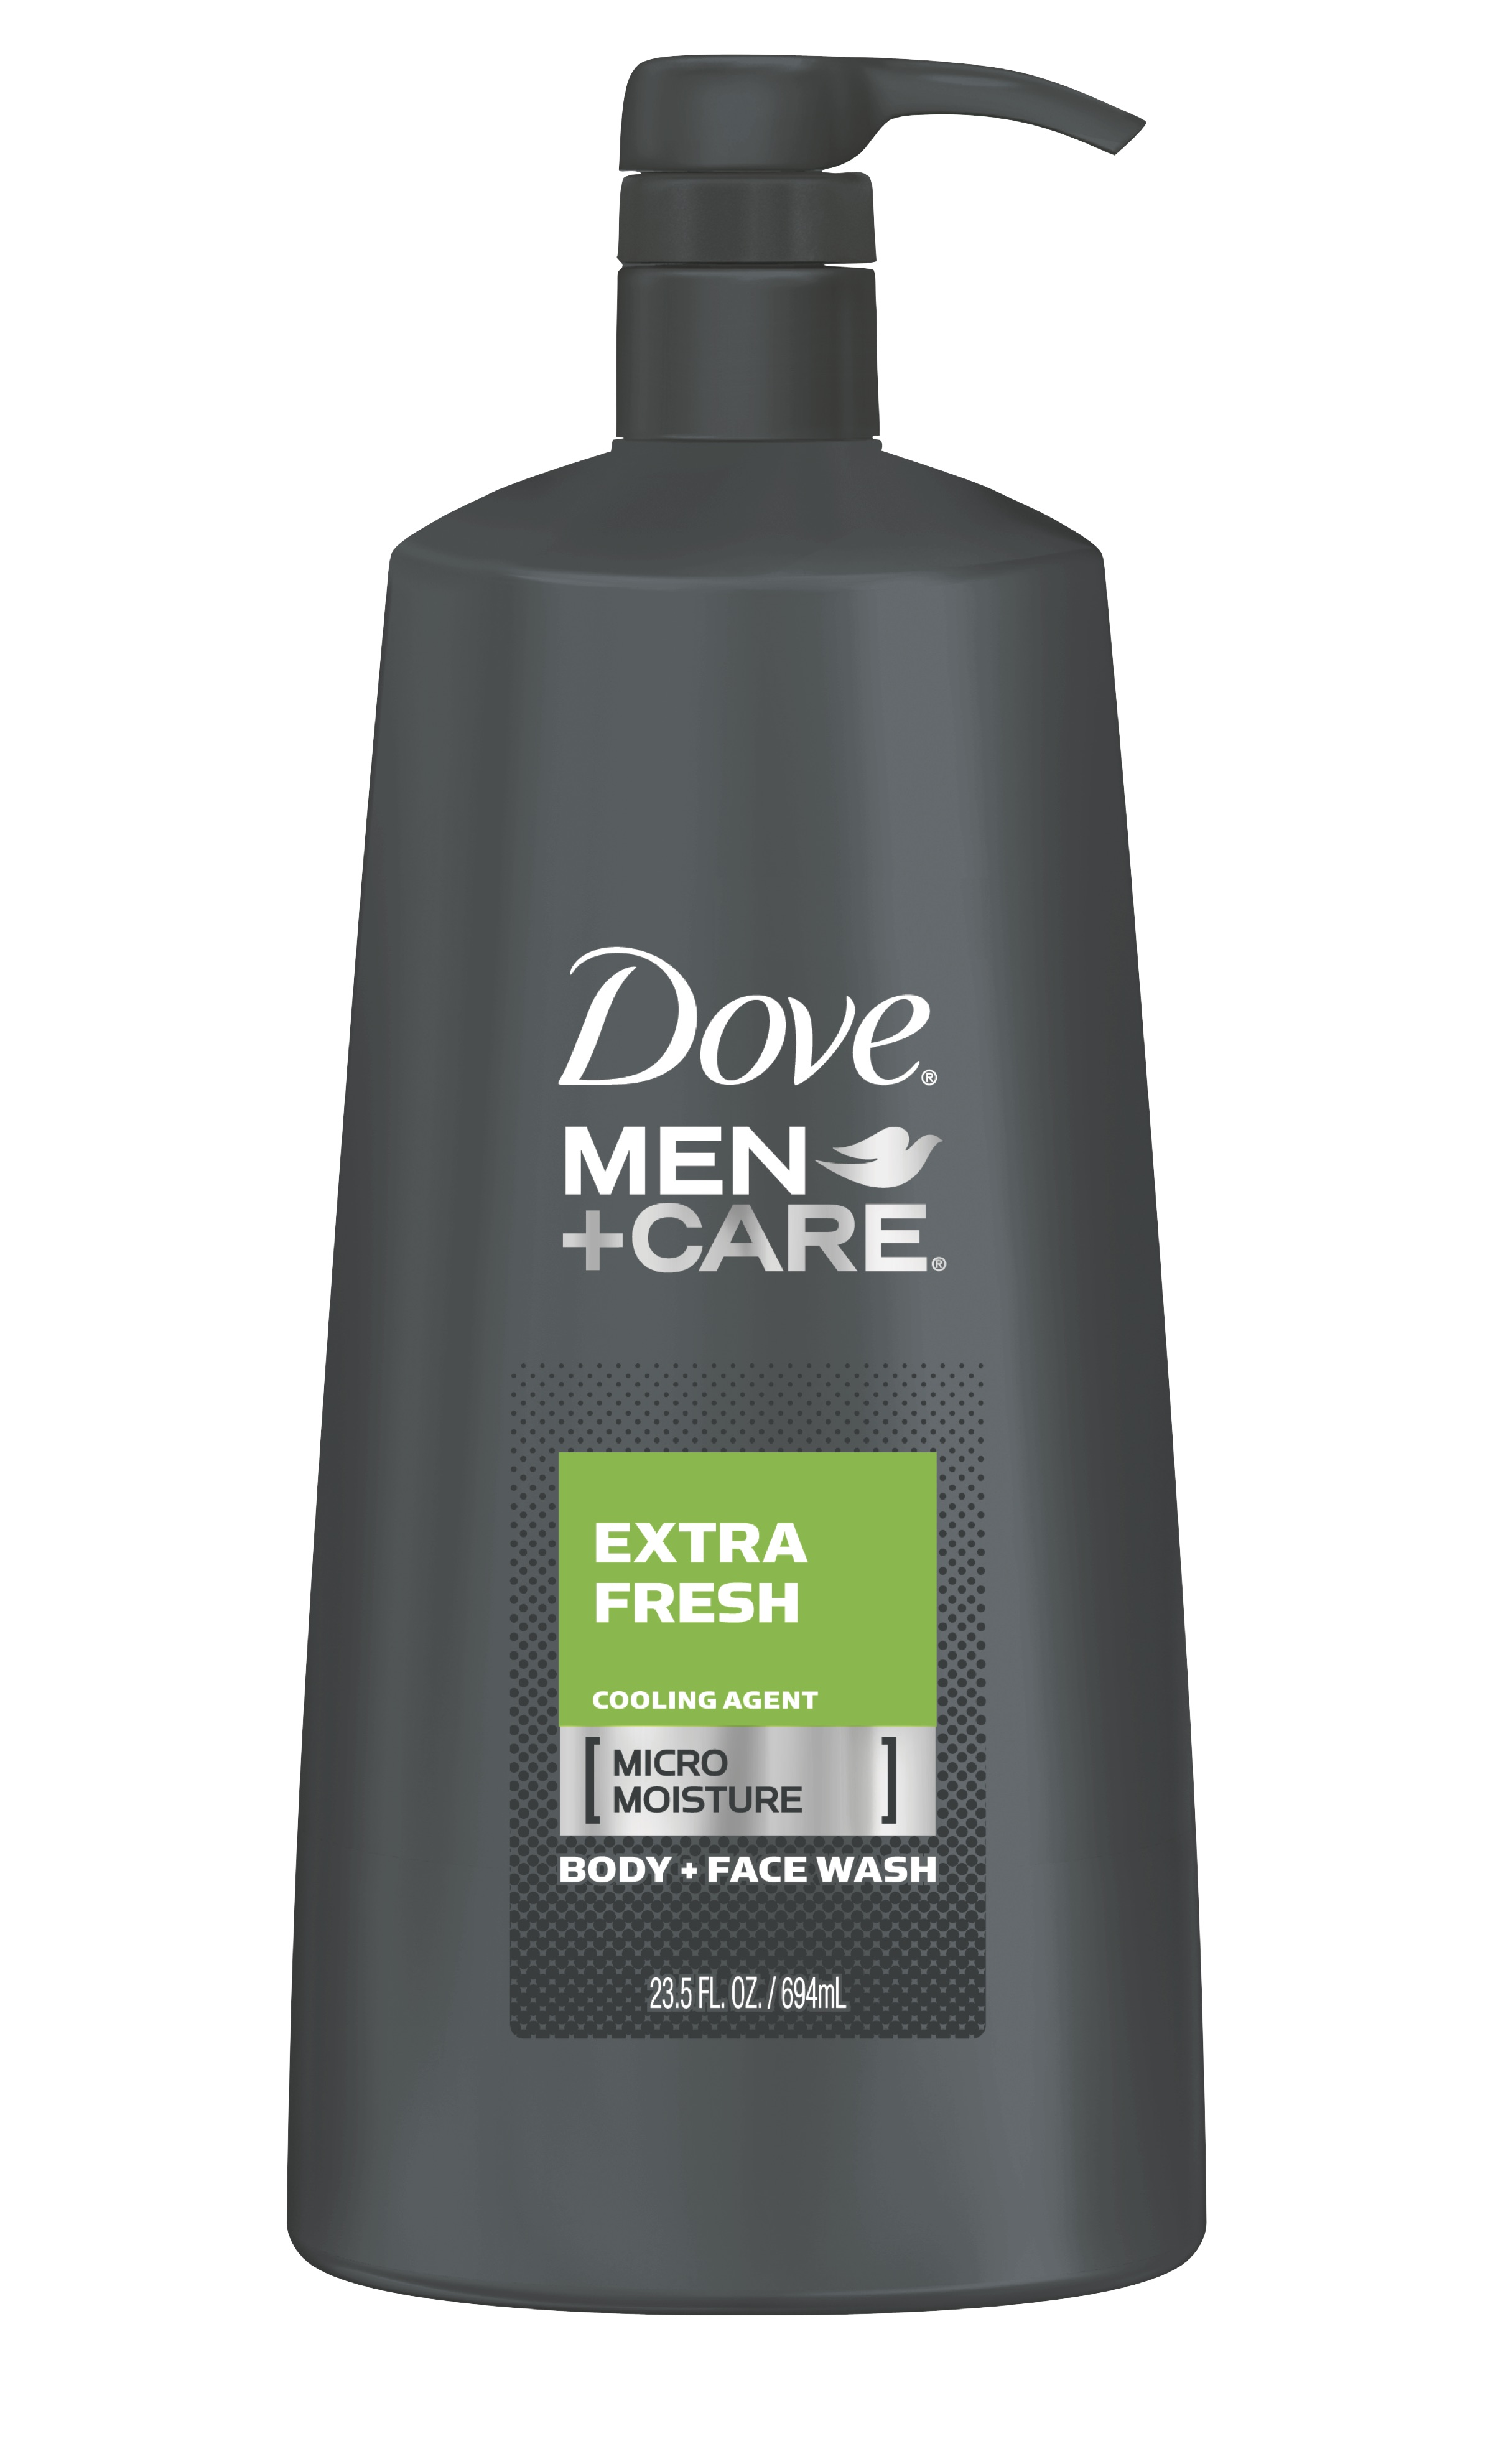 Dove Men Care Extra Fresh Body And Face Wash Reviews 2020